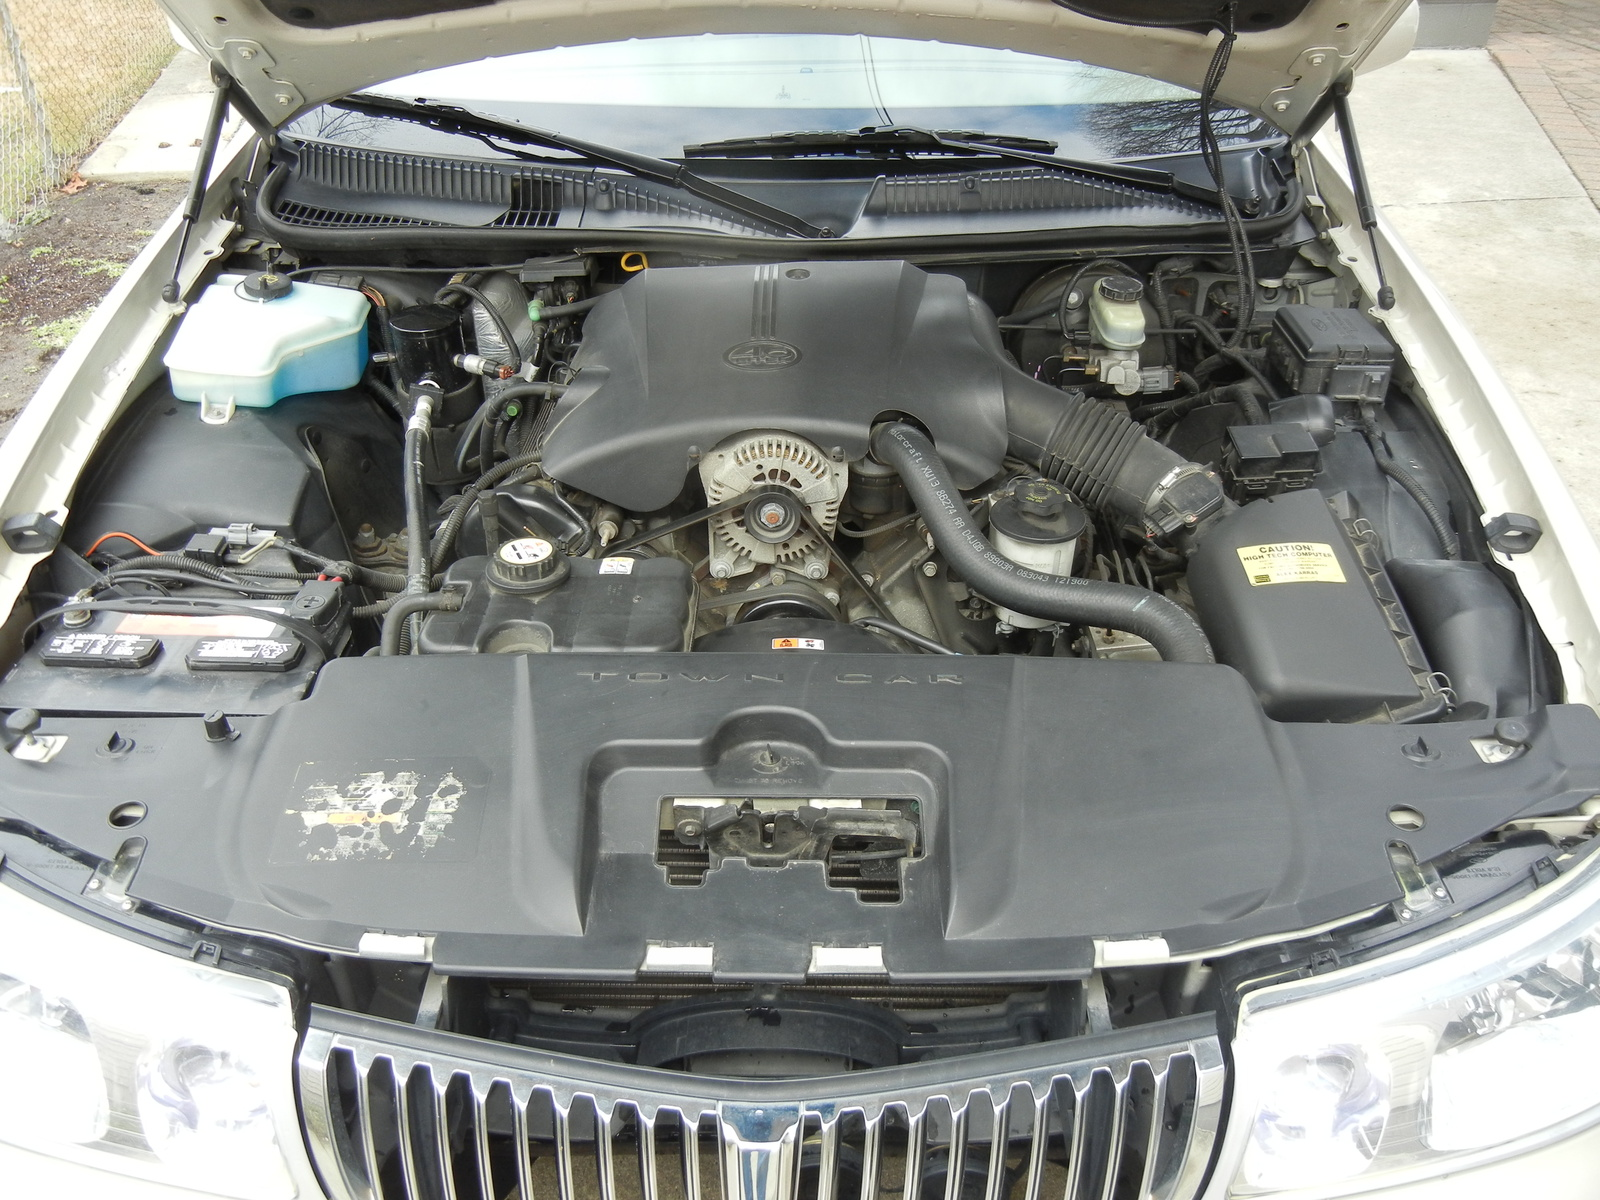 2001 Lincoln Town Car - Other Pictures - CarGurus